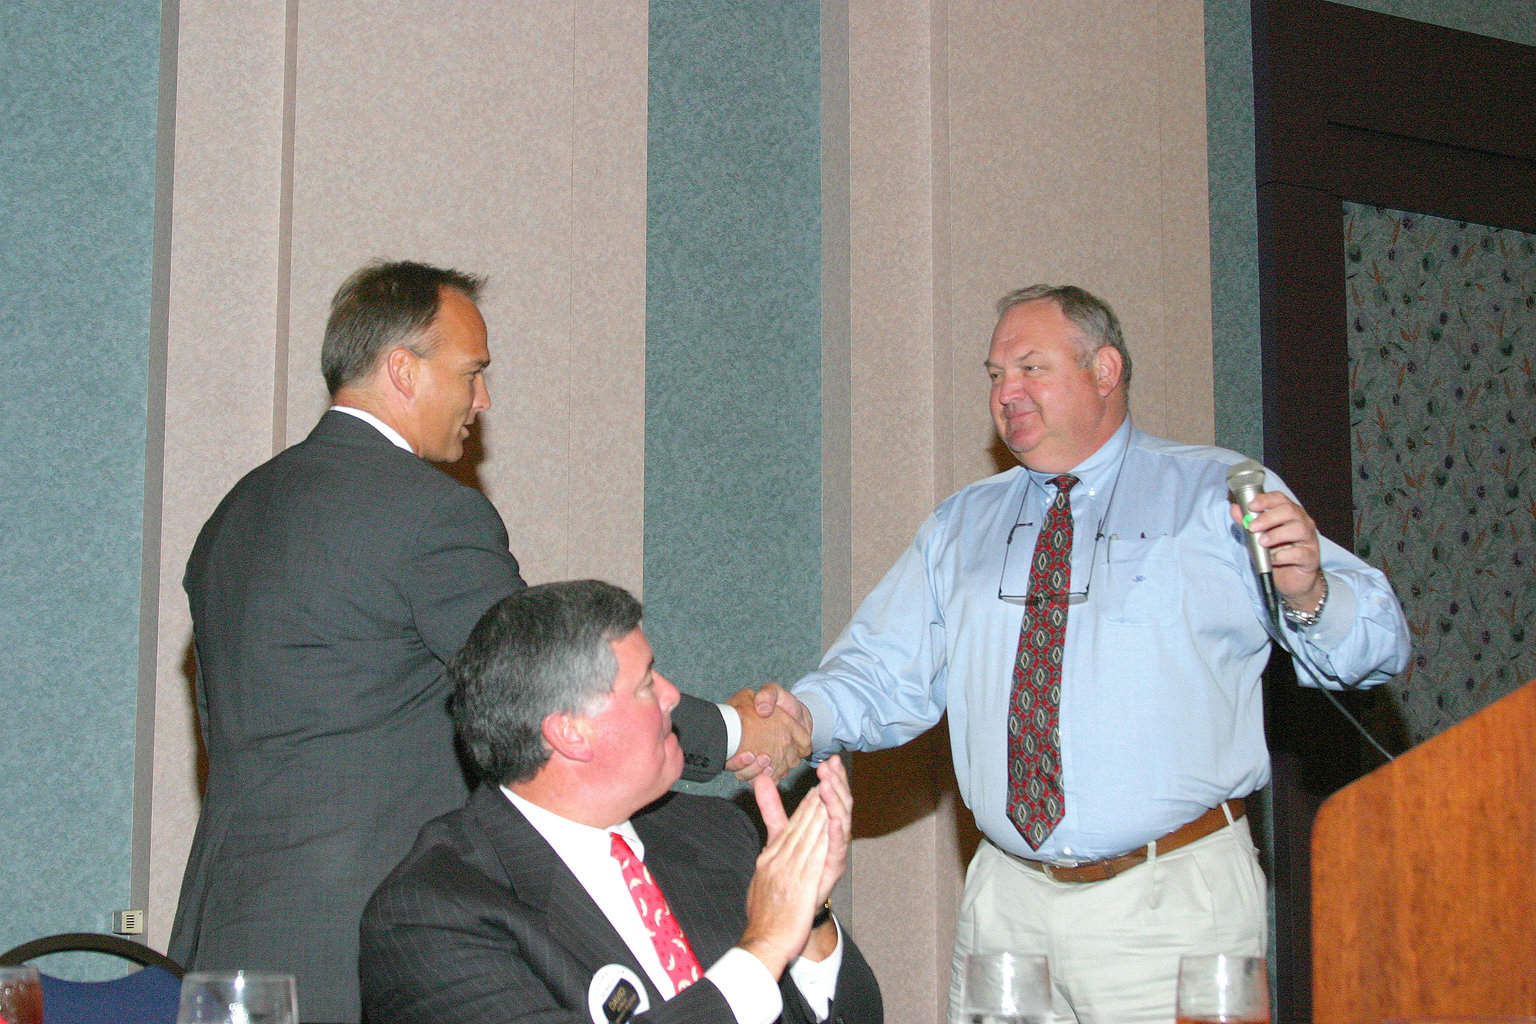 9-20-04 Curtis McGill introducing Mark Richt